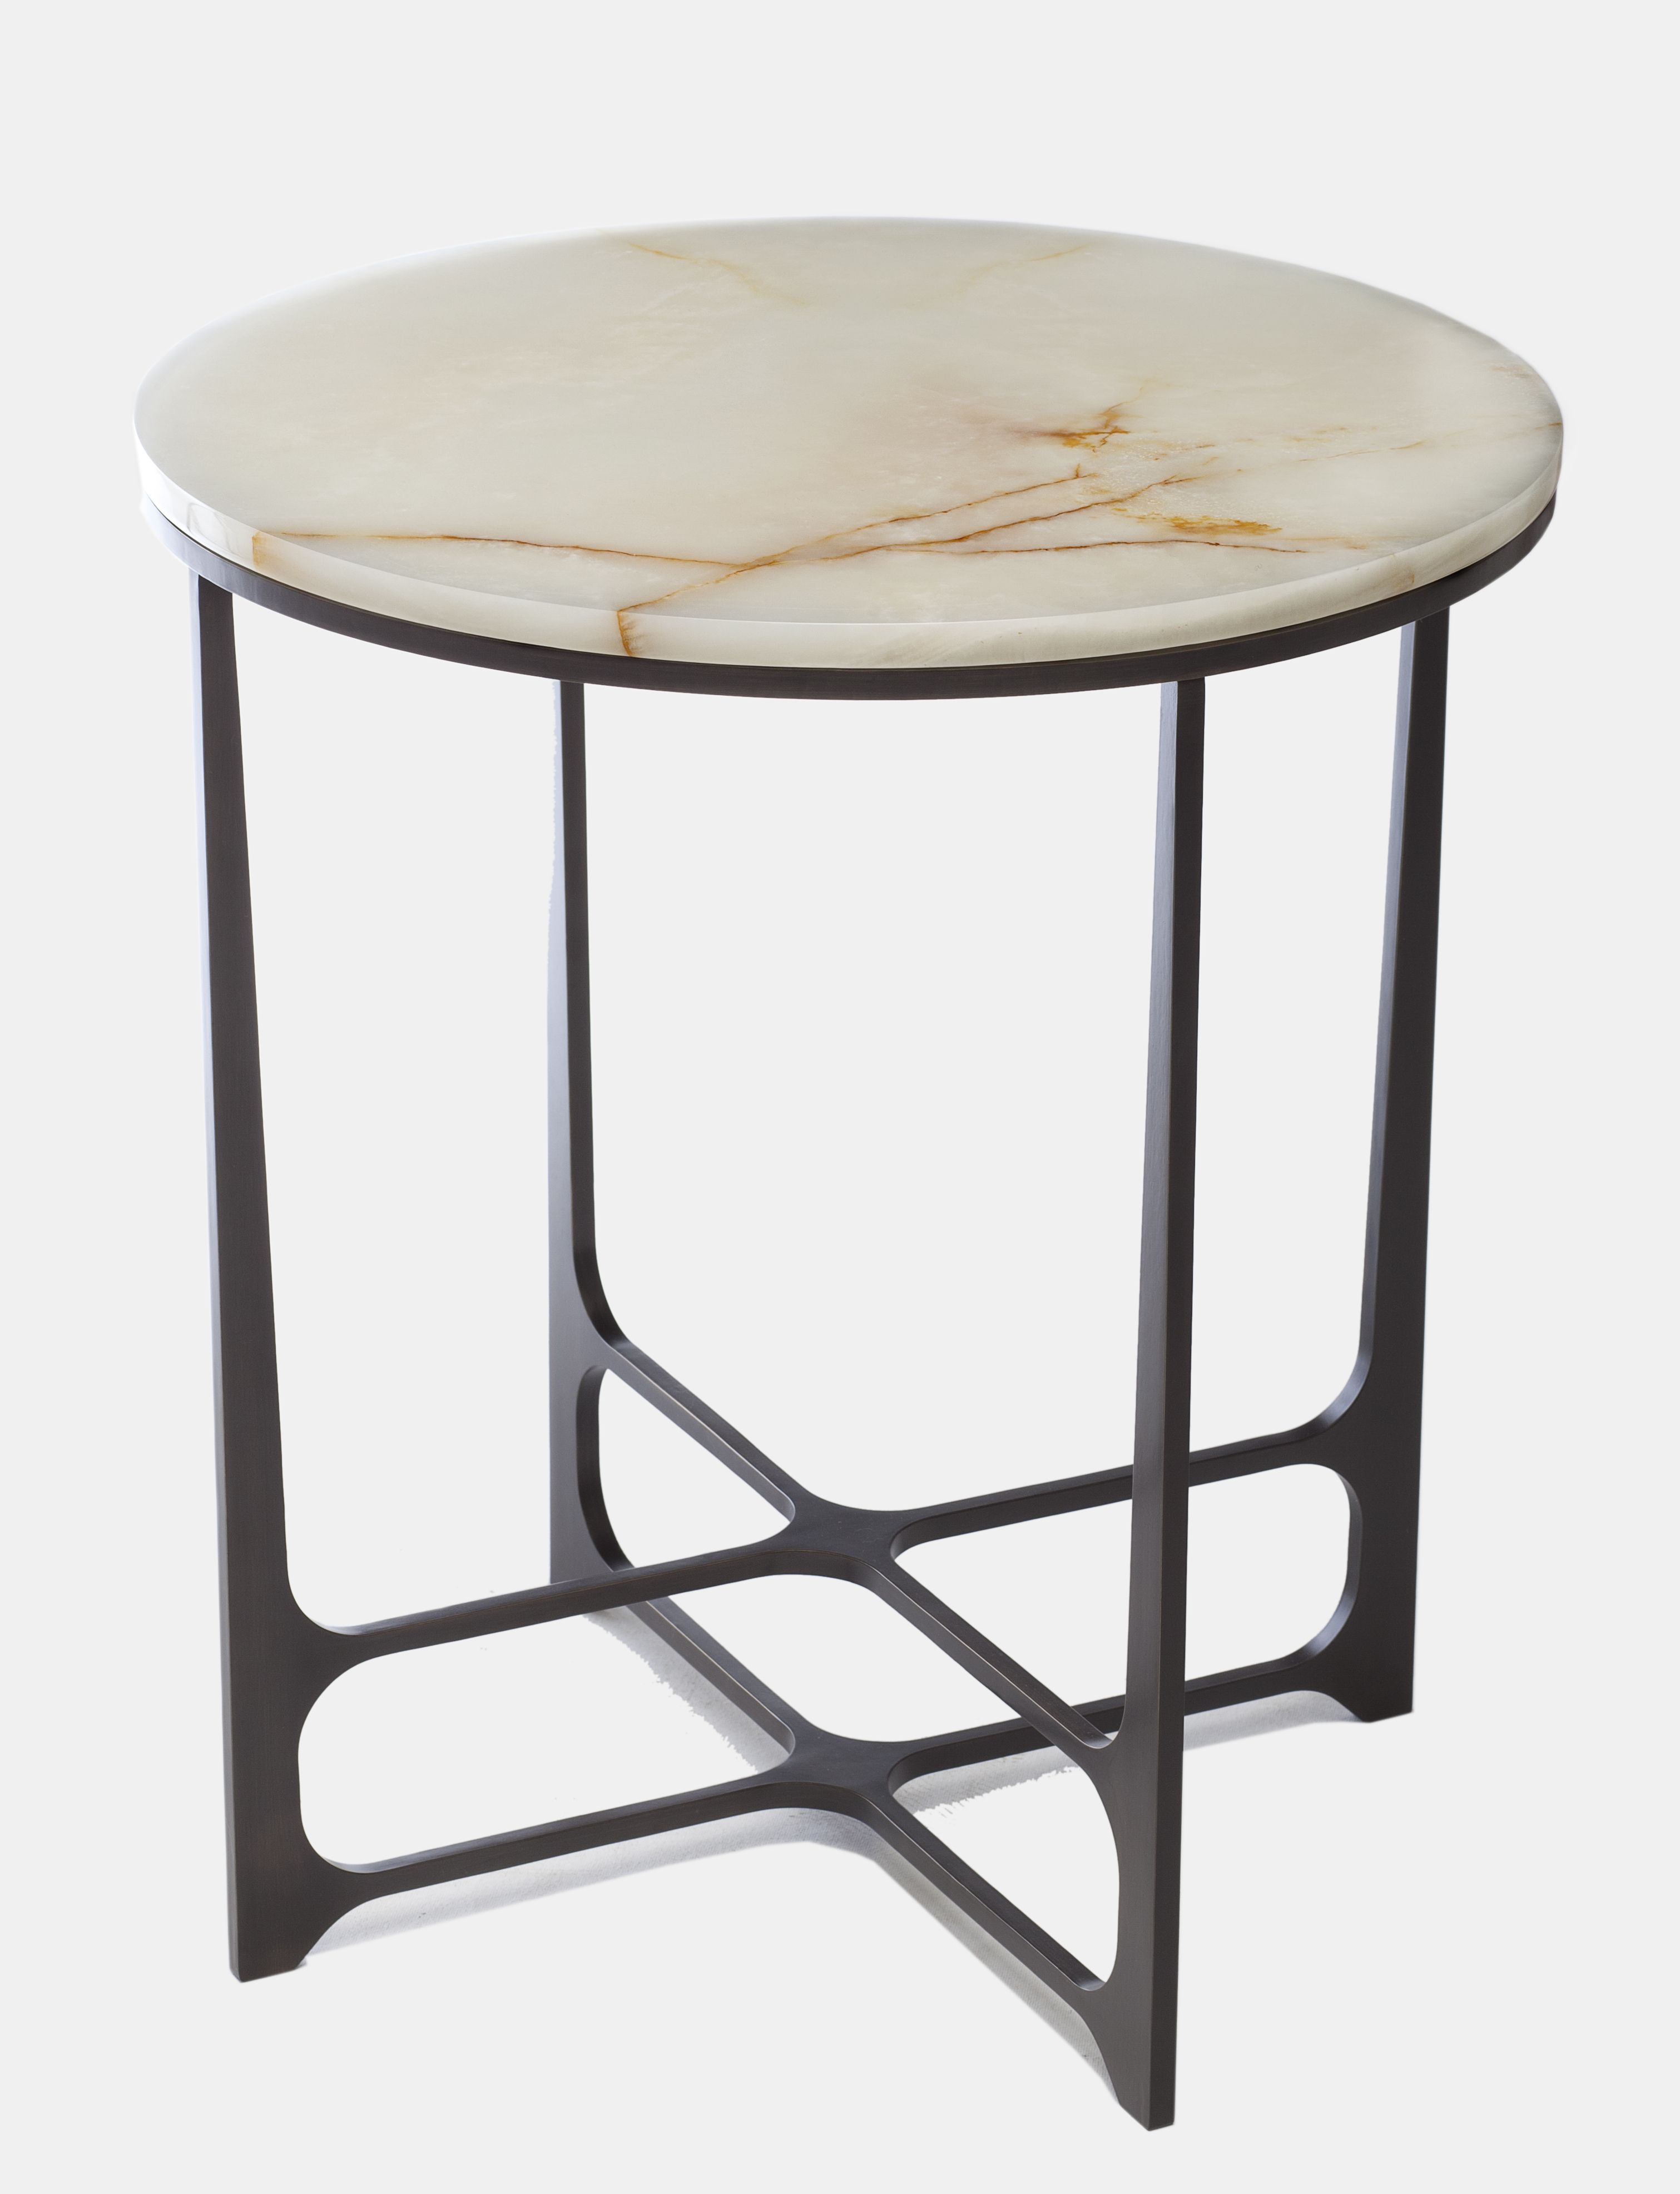 leonid low side table bronze copper brass marble onyx top round accent christopher hall kids lighting hardwood tile tables with charging station ikea wall storage black metal